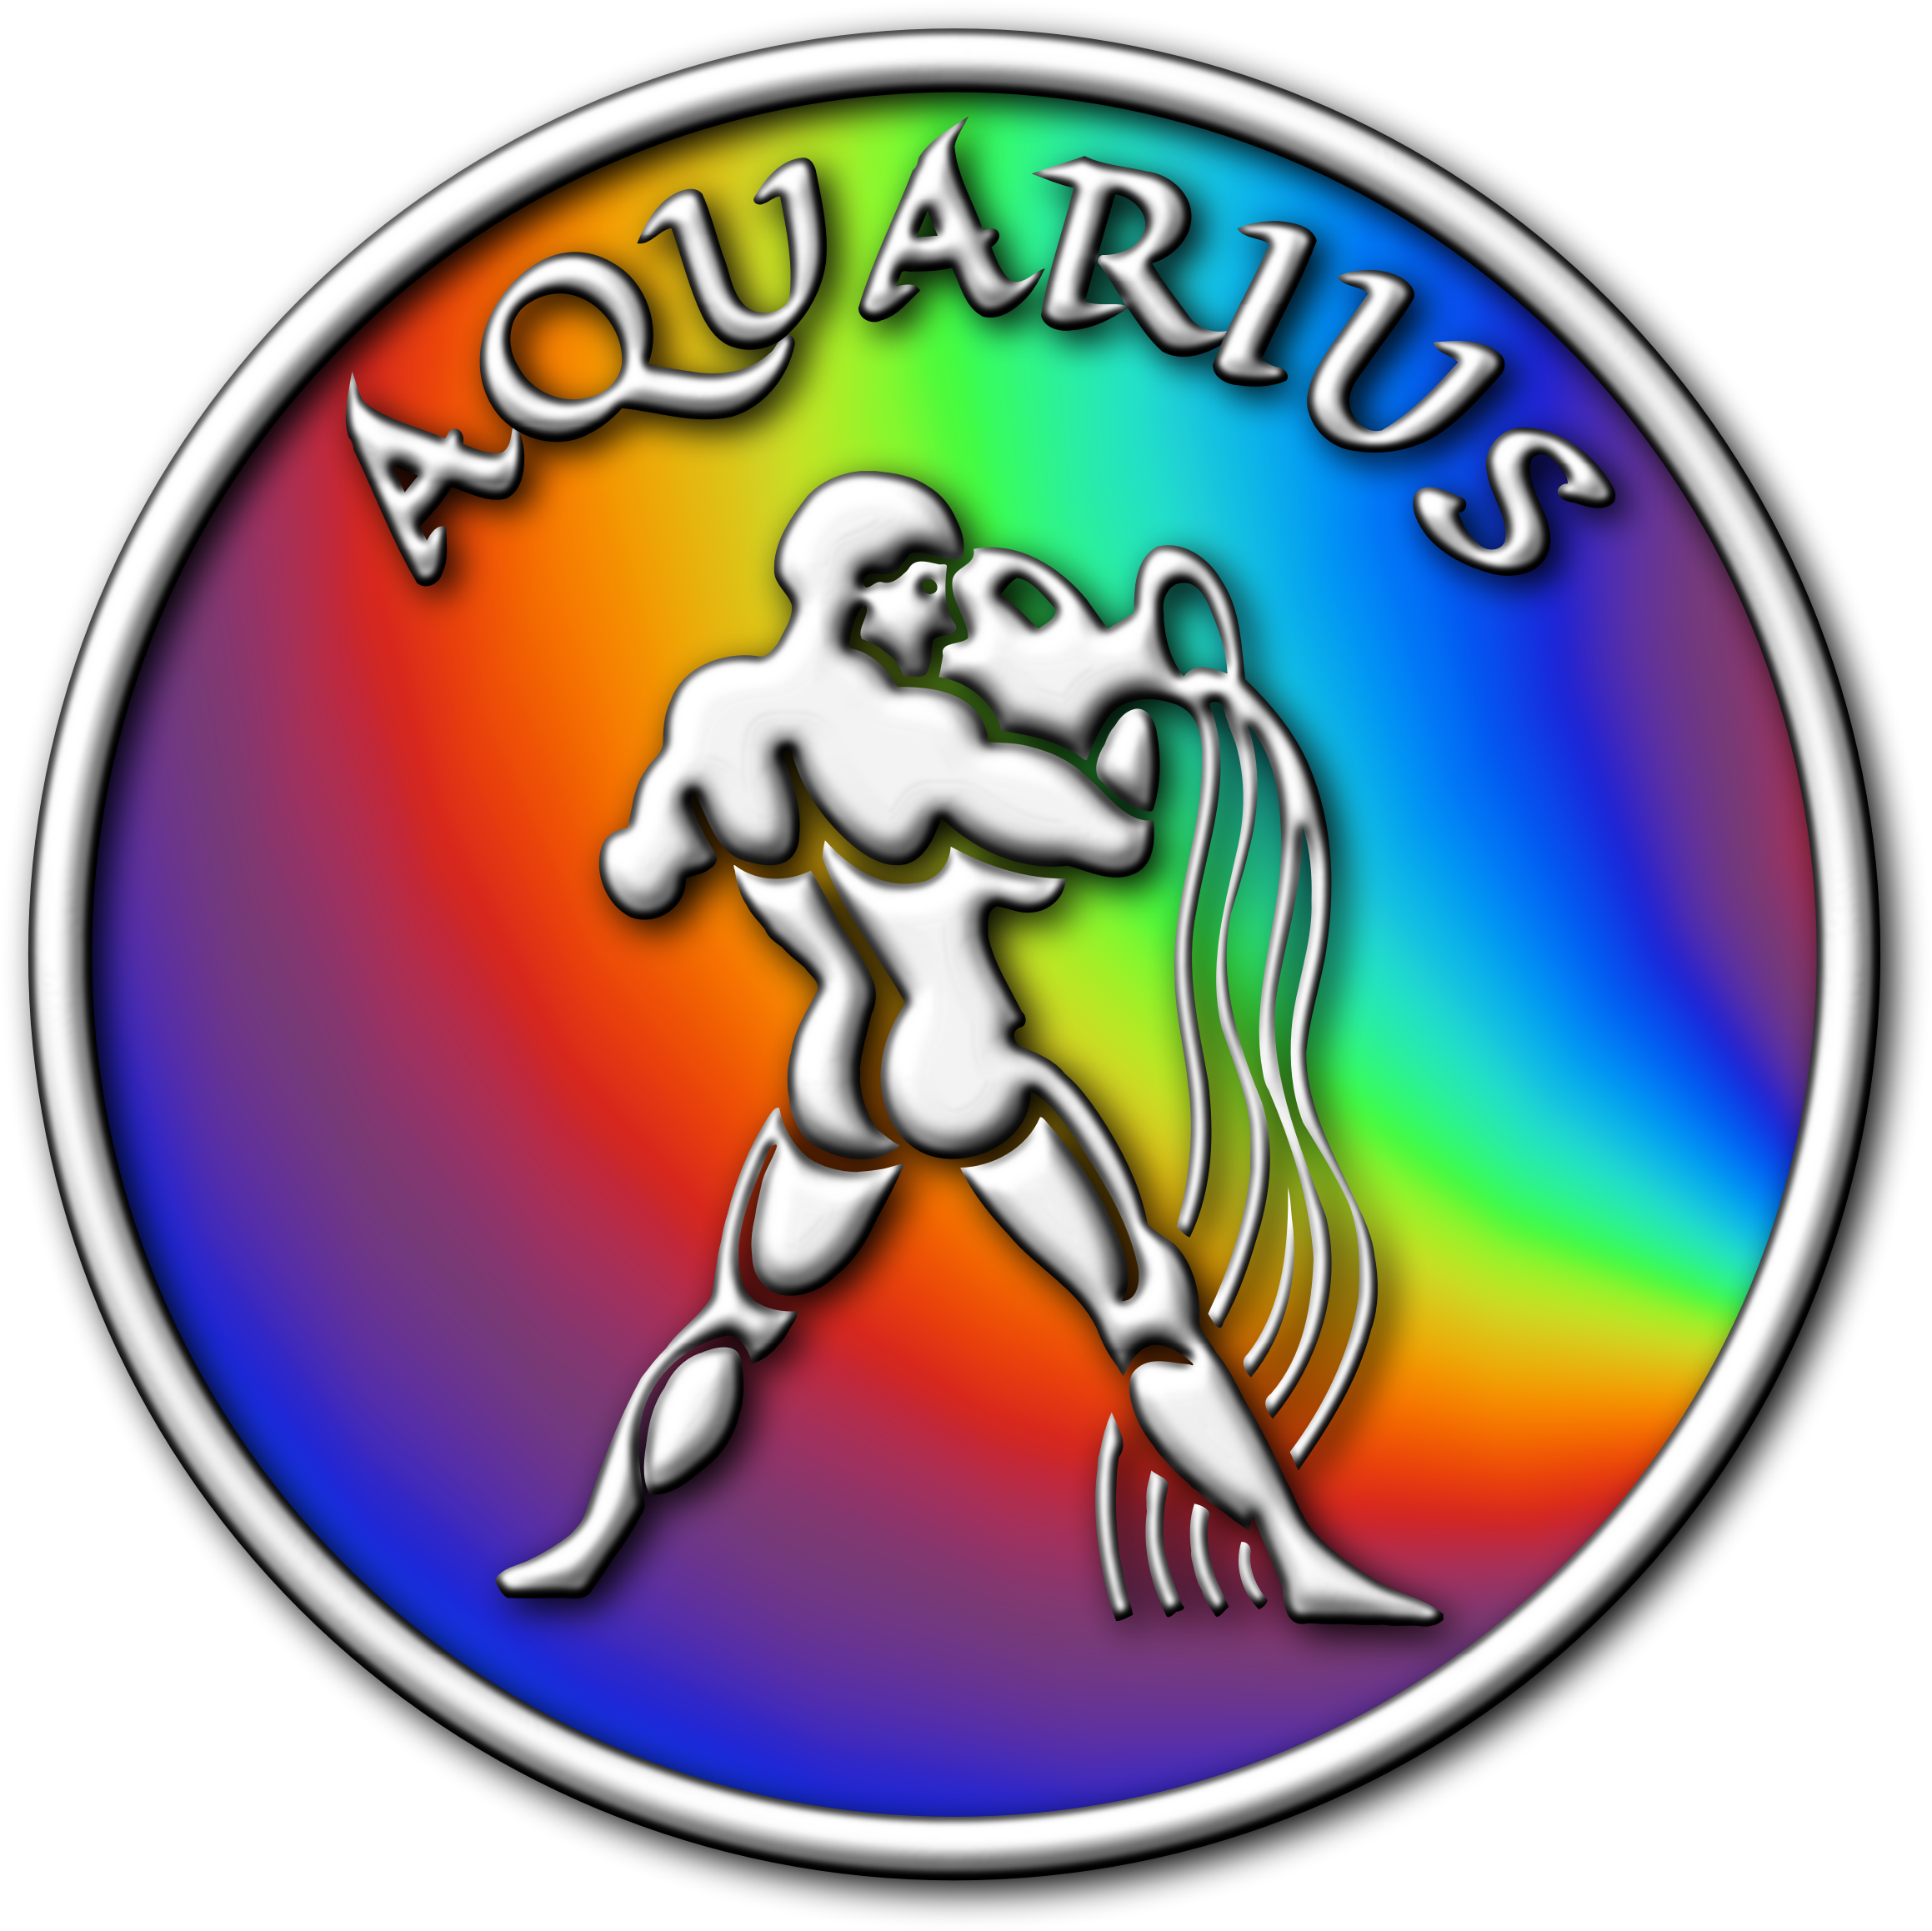 Aquarius drawing 6 by Firkin